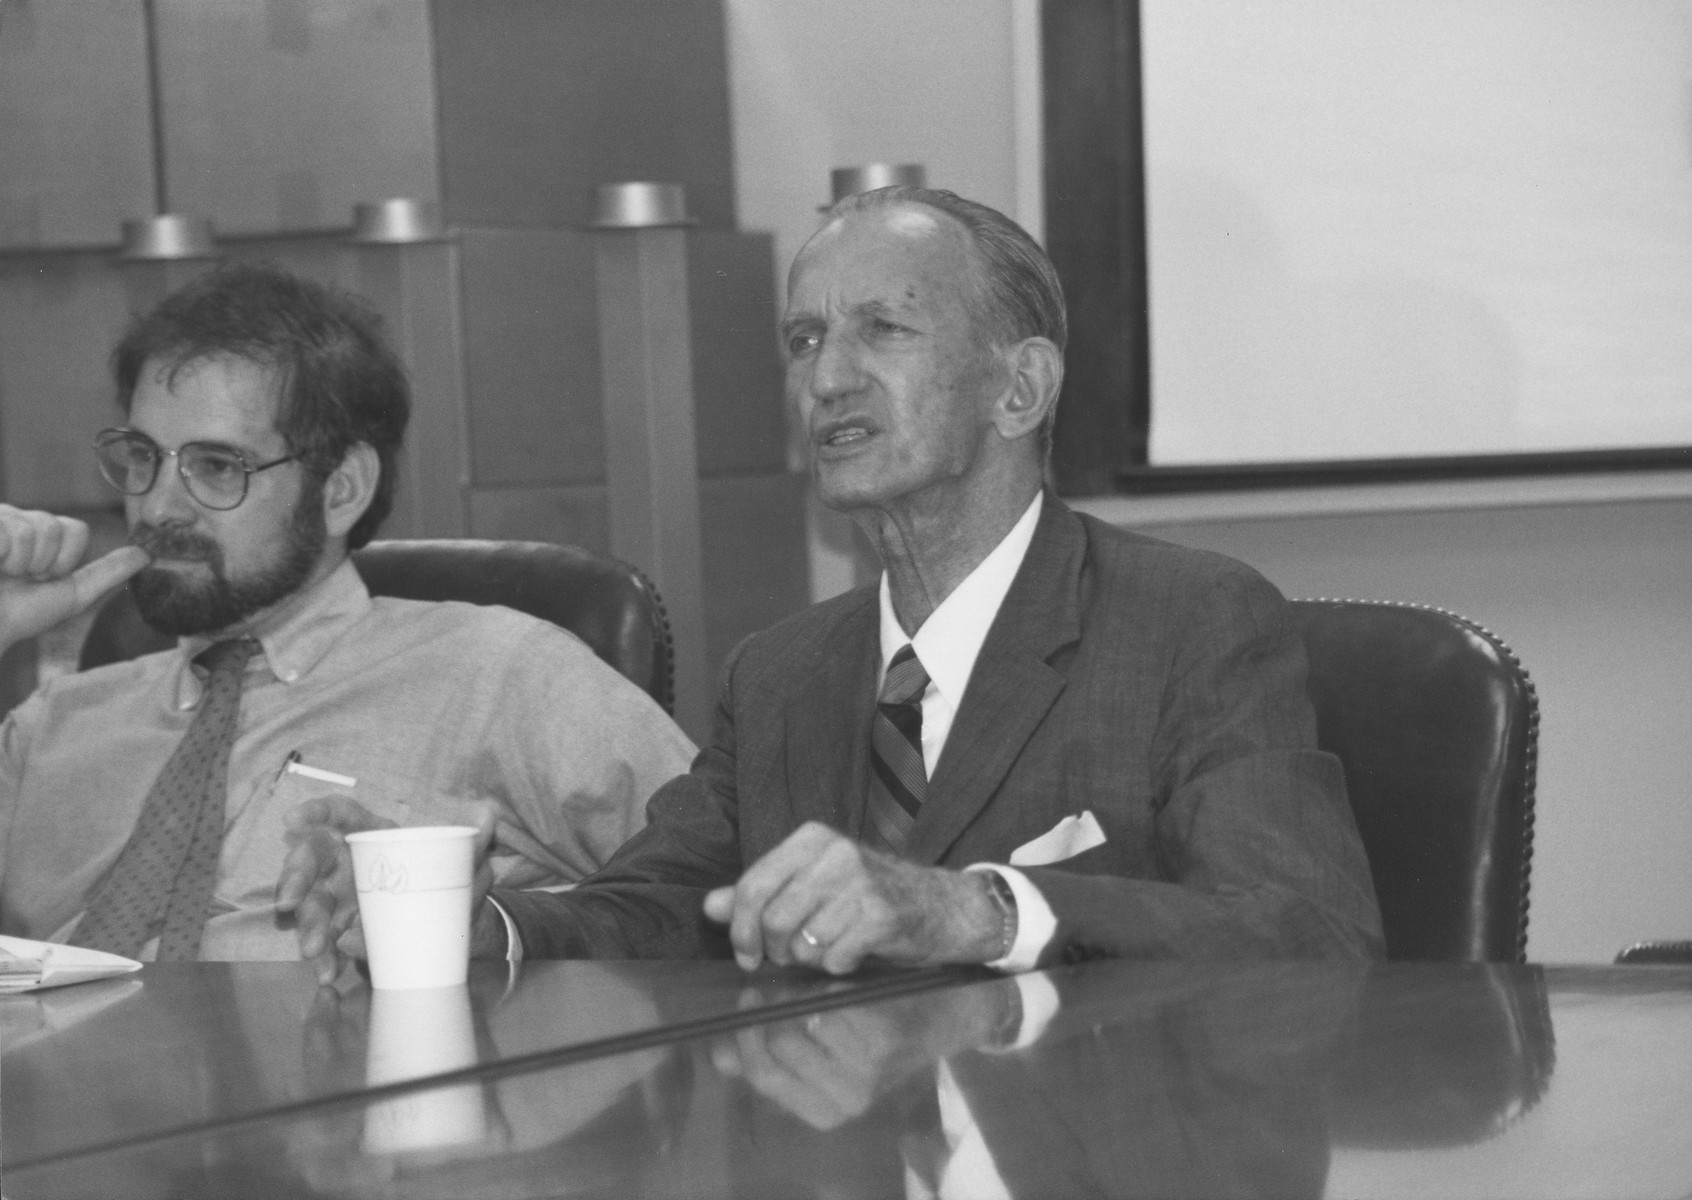 Polish underground courier Jan Karski (right) gives a guest lecture at a U.S. Holocaust Memorial Museum staff seminar on the history of the Holocaust,  Seated next to Karski is Museum Program Director Michael Berenbaum.